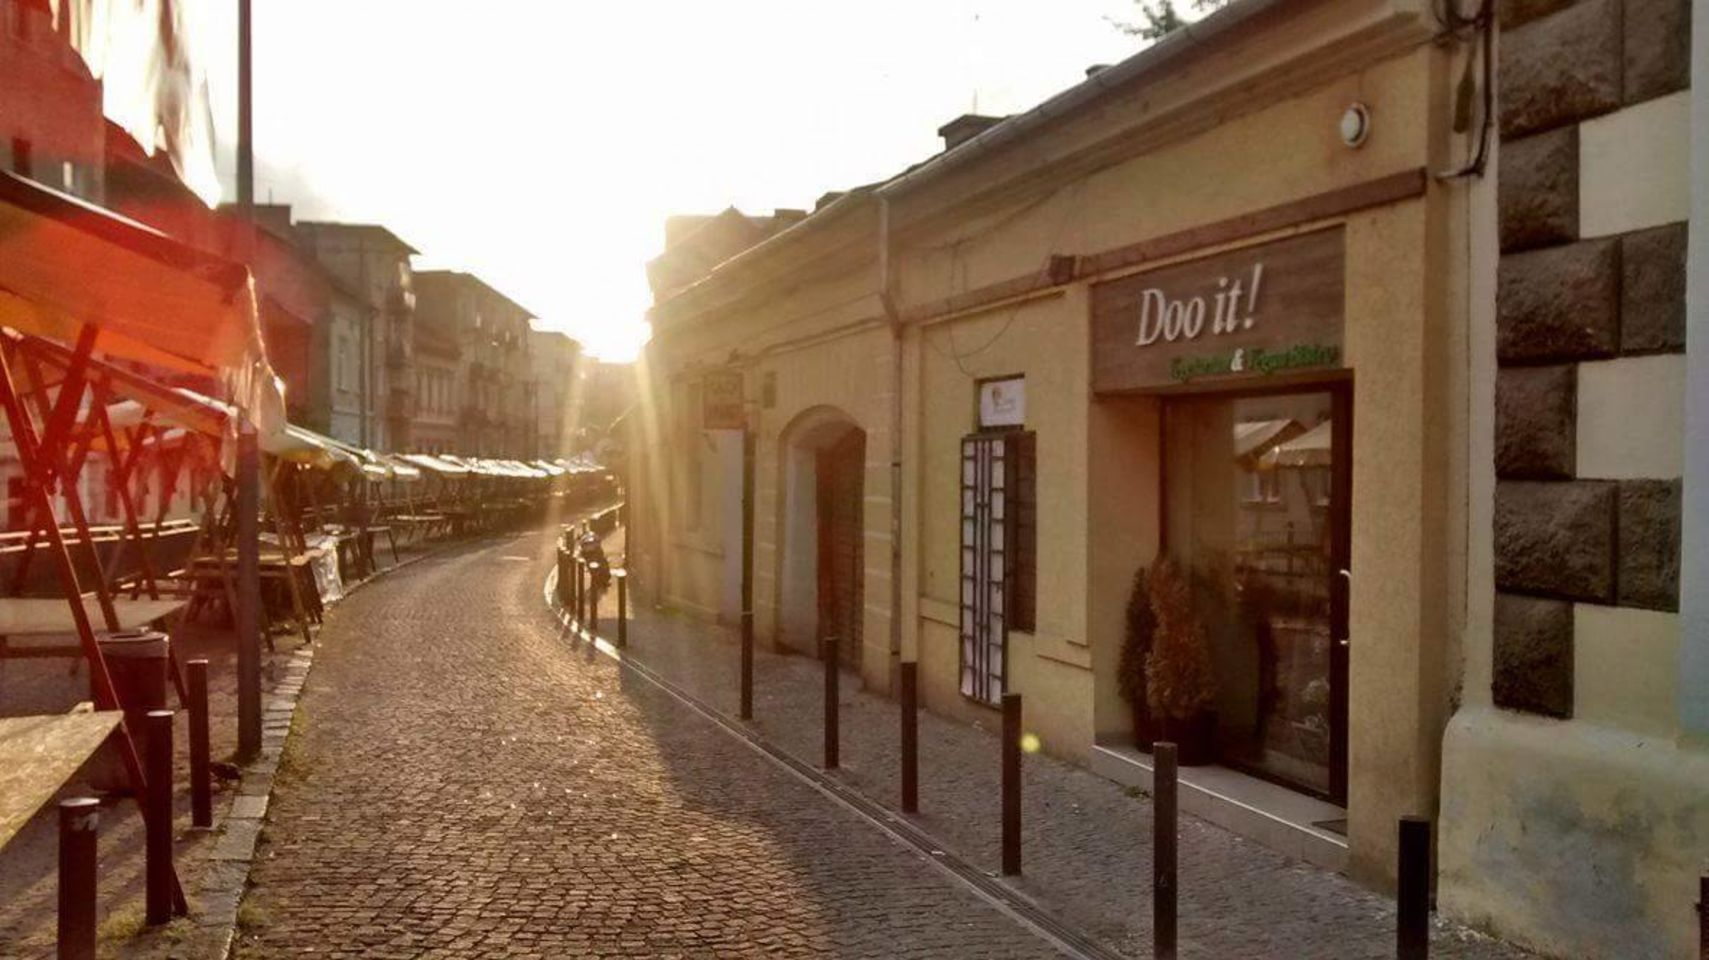 A photo of Doo it Cluj-Napoca